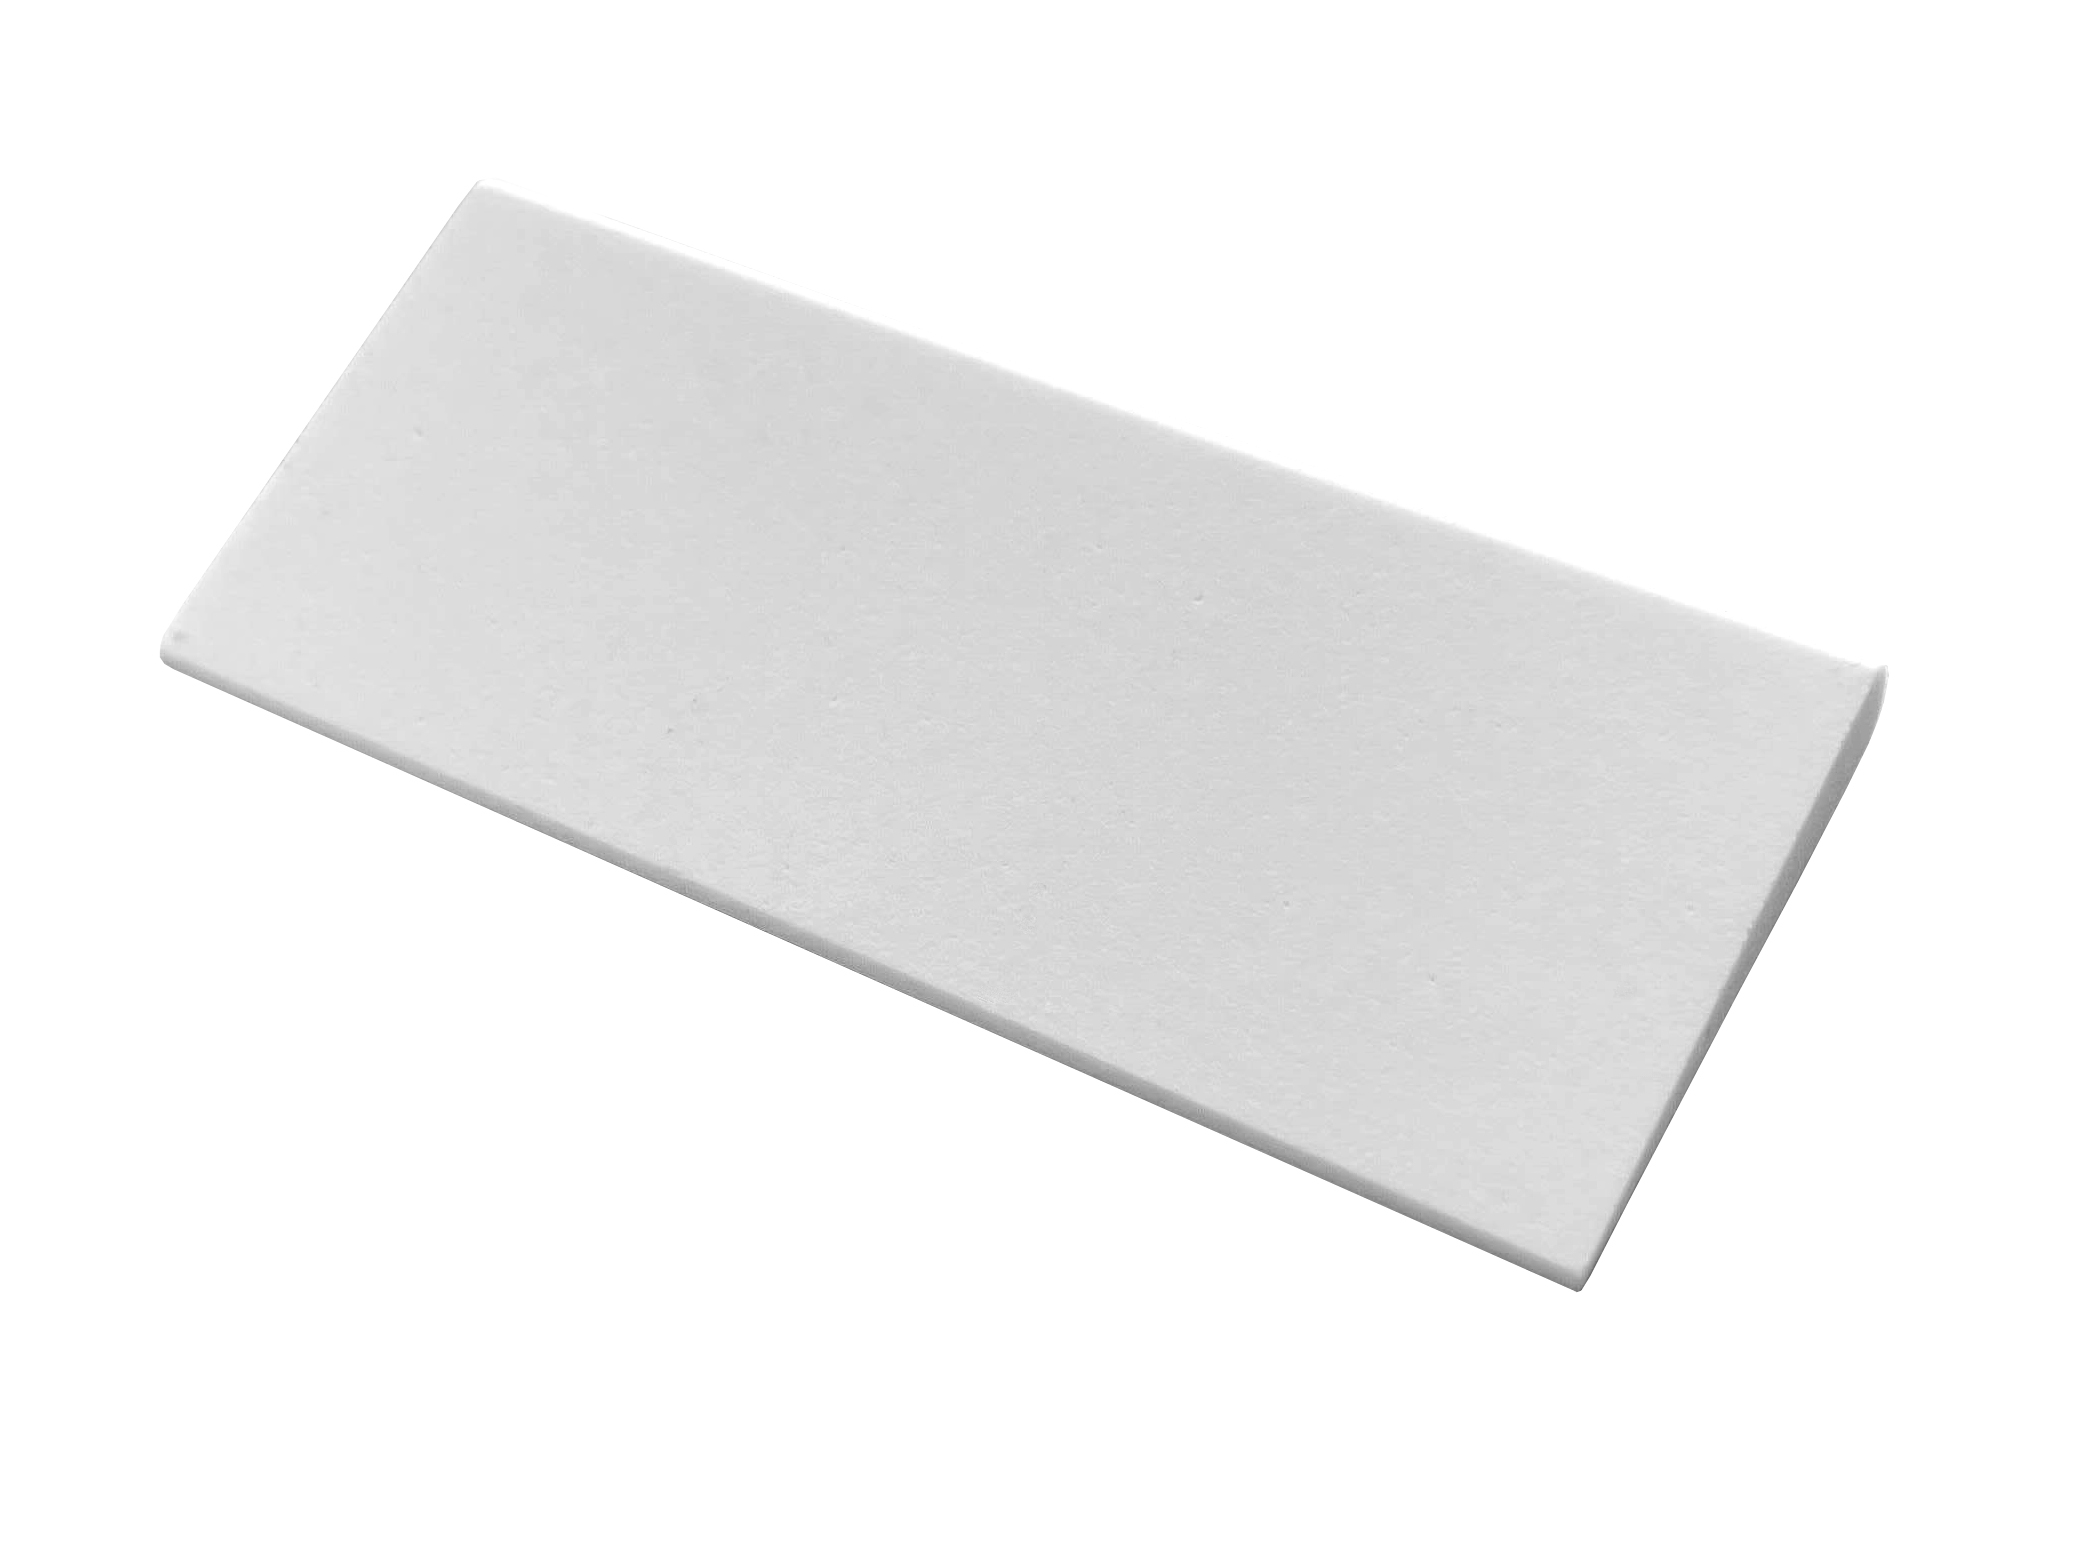 Wedge Dental Sharpening Stone